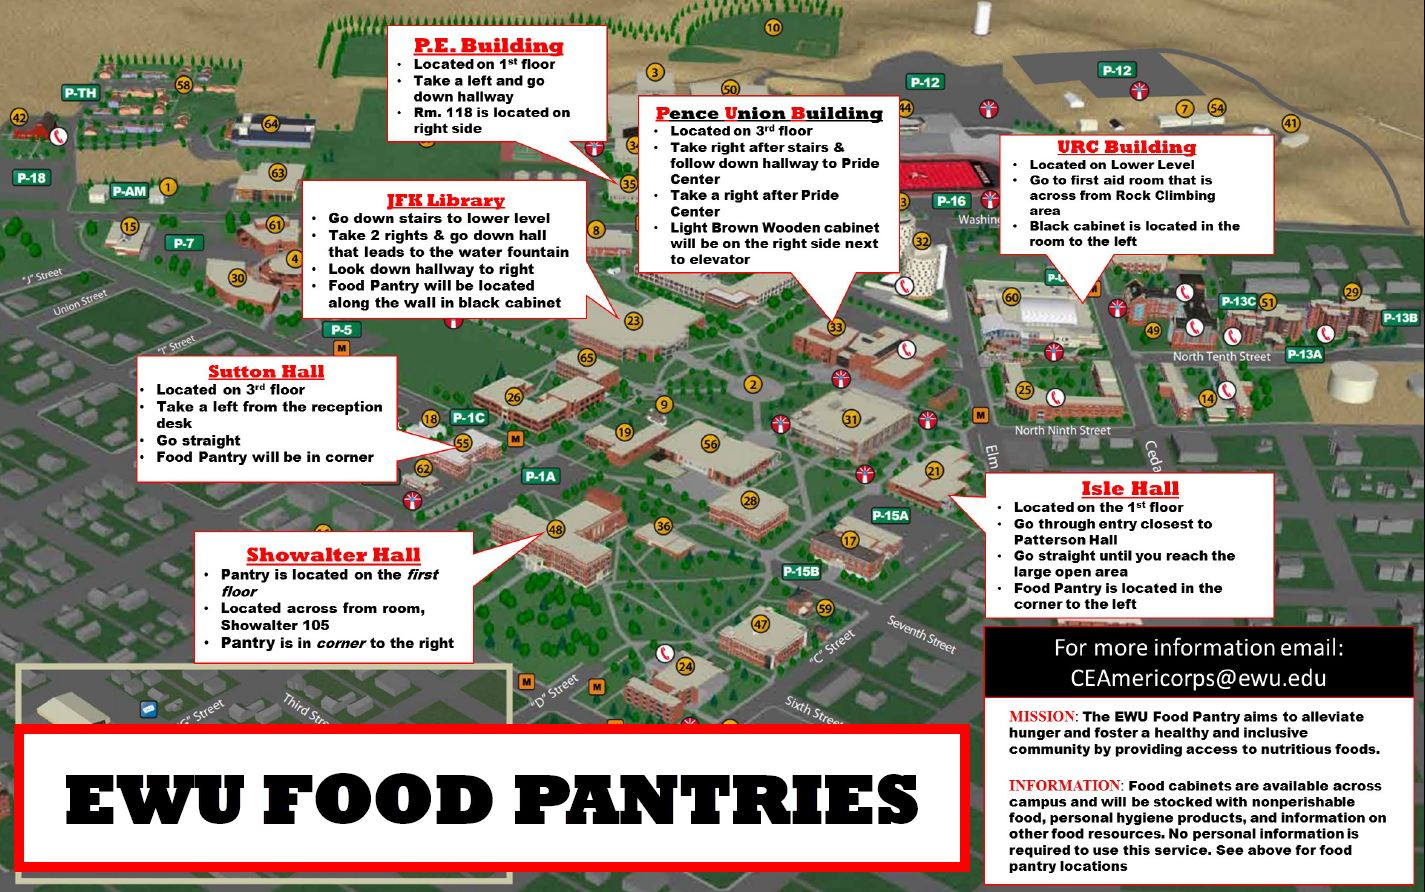 eastern washington university campus map Ewu Food Pantry Program eastern washington university campus map